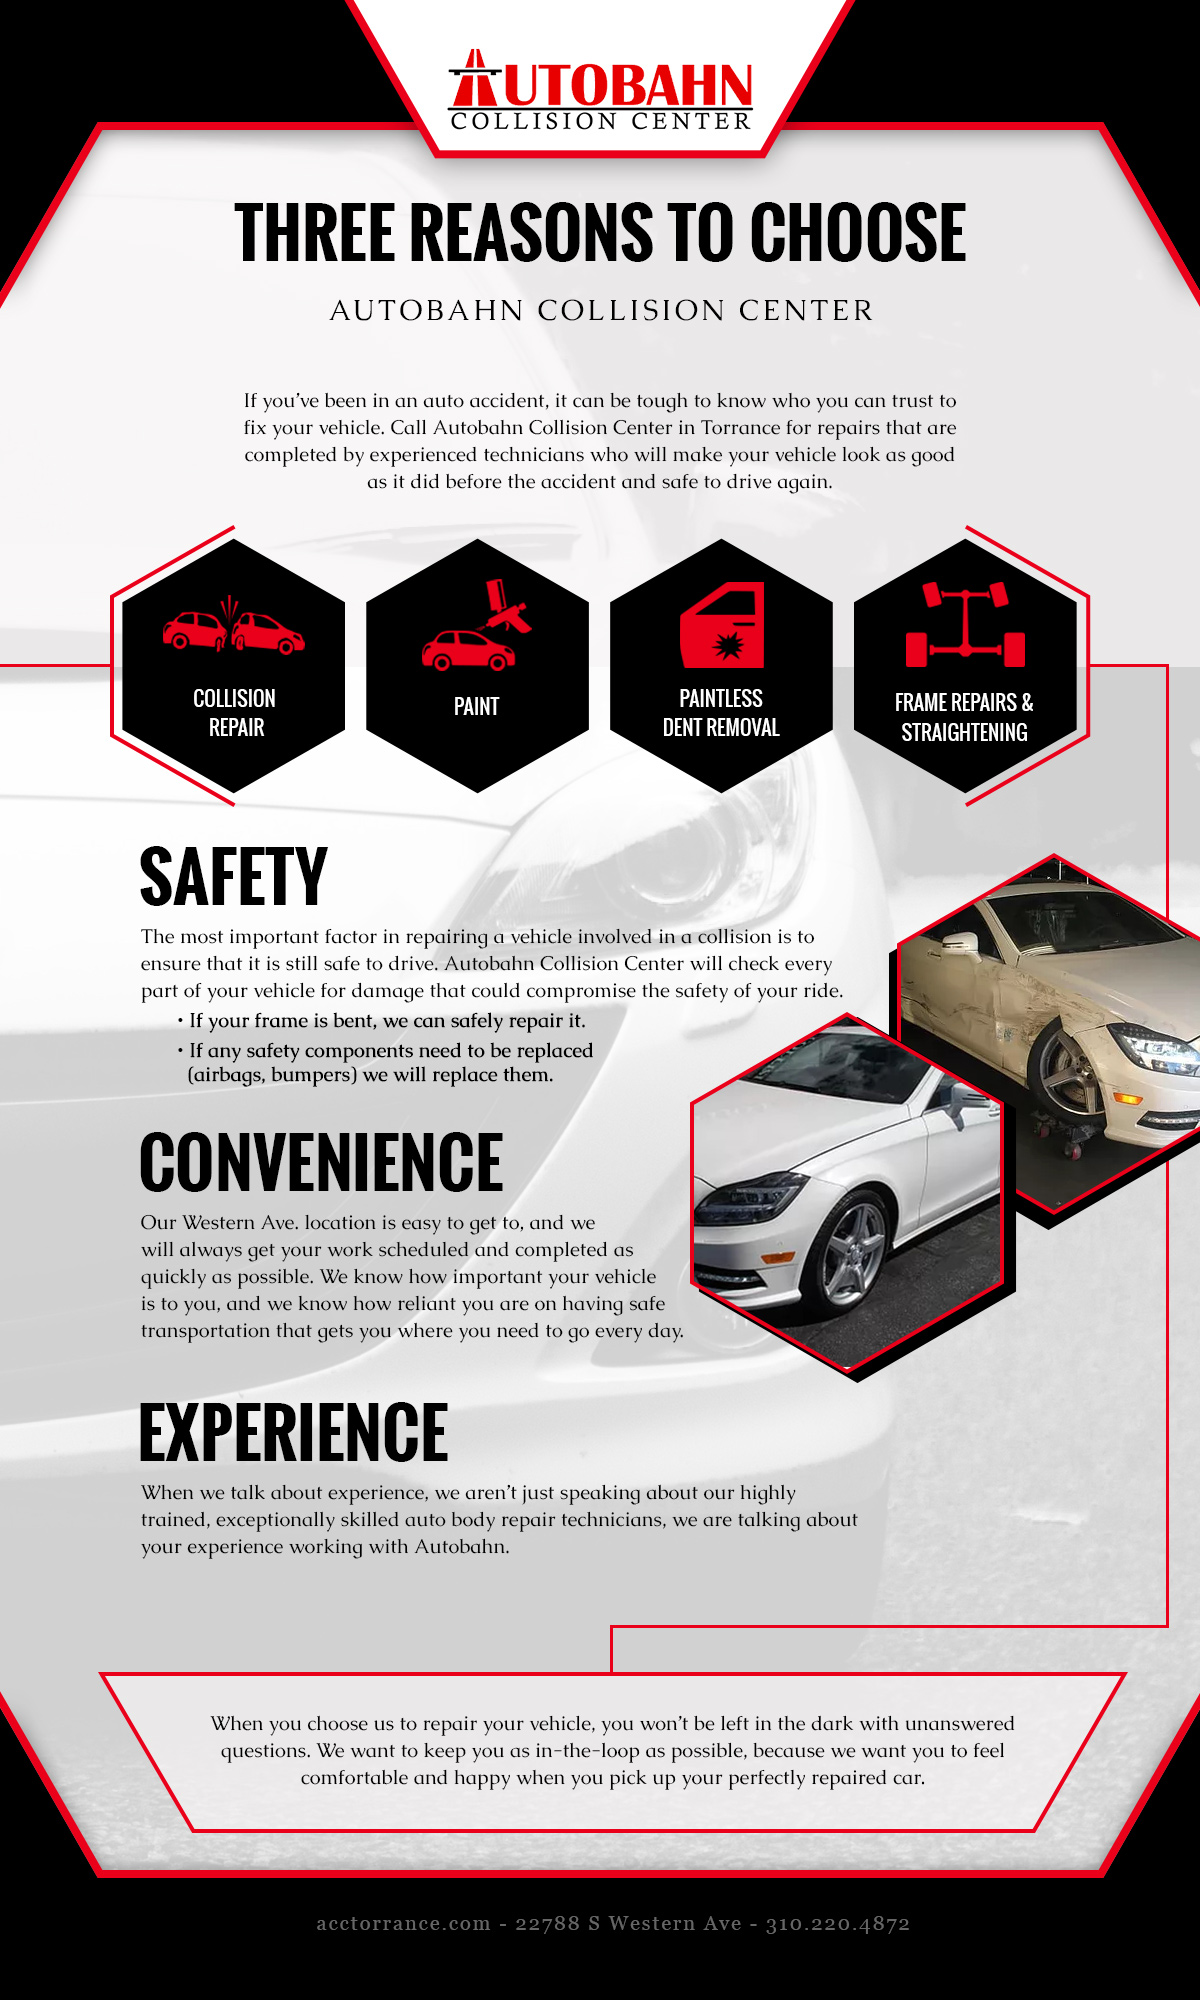 Body Shop Torrance: Three Reasons to Trust Autobahn Collision Center